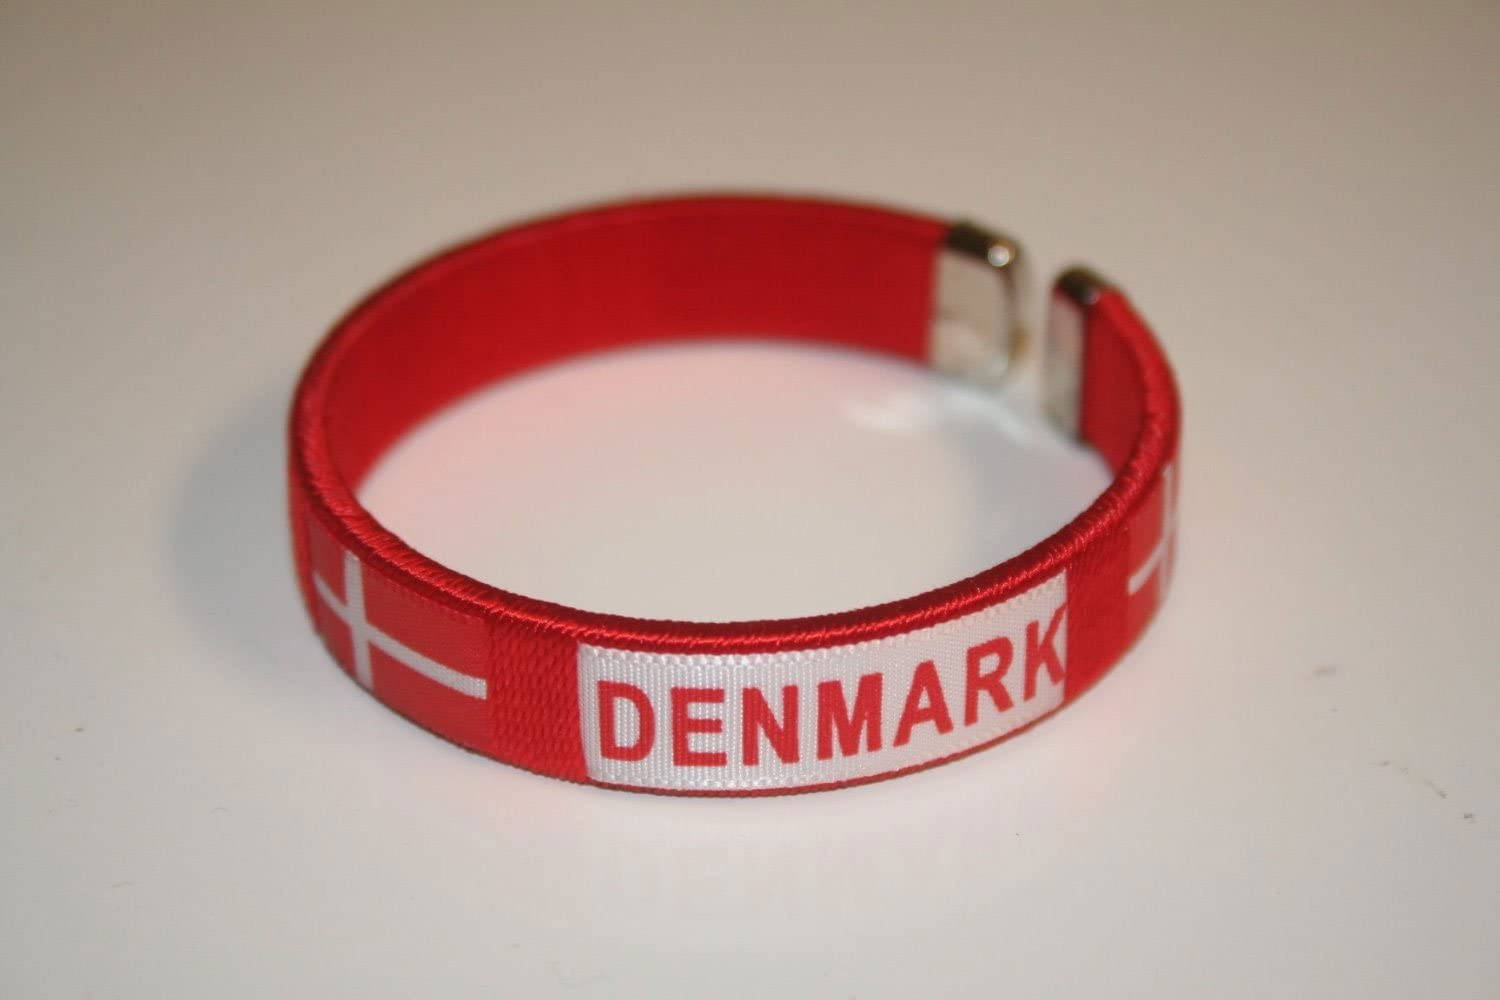 2.5 Inches in Diameter X 0.5 Inches Wide .. Denmark Red Country Flag Flexible Adult C Bracelet Wristband.. New SUPERDAVES SUPERSTORE